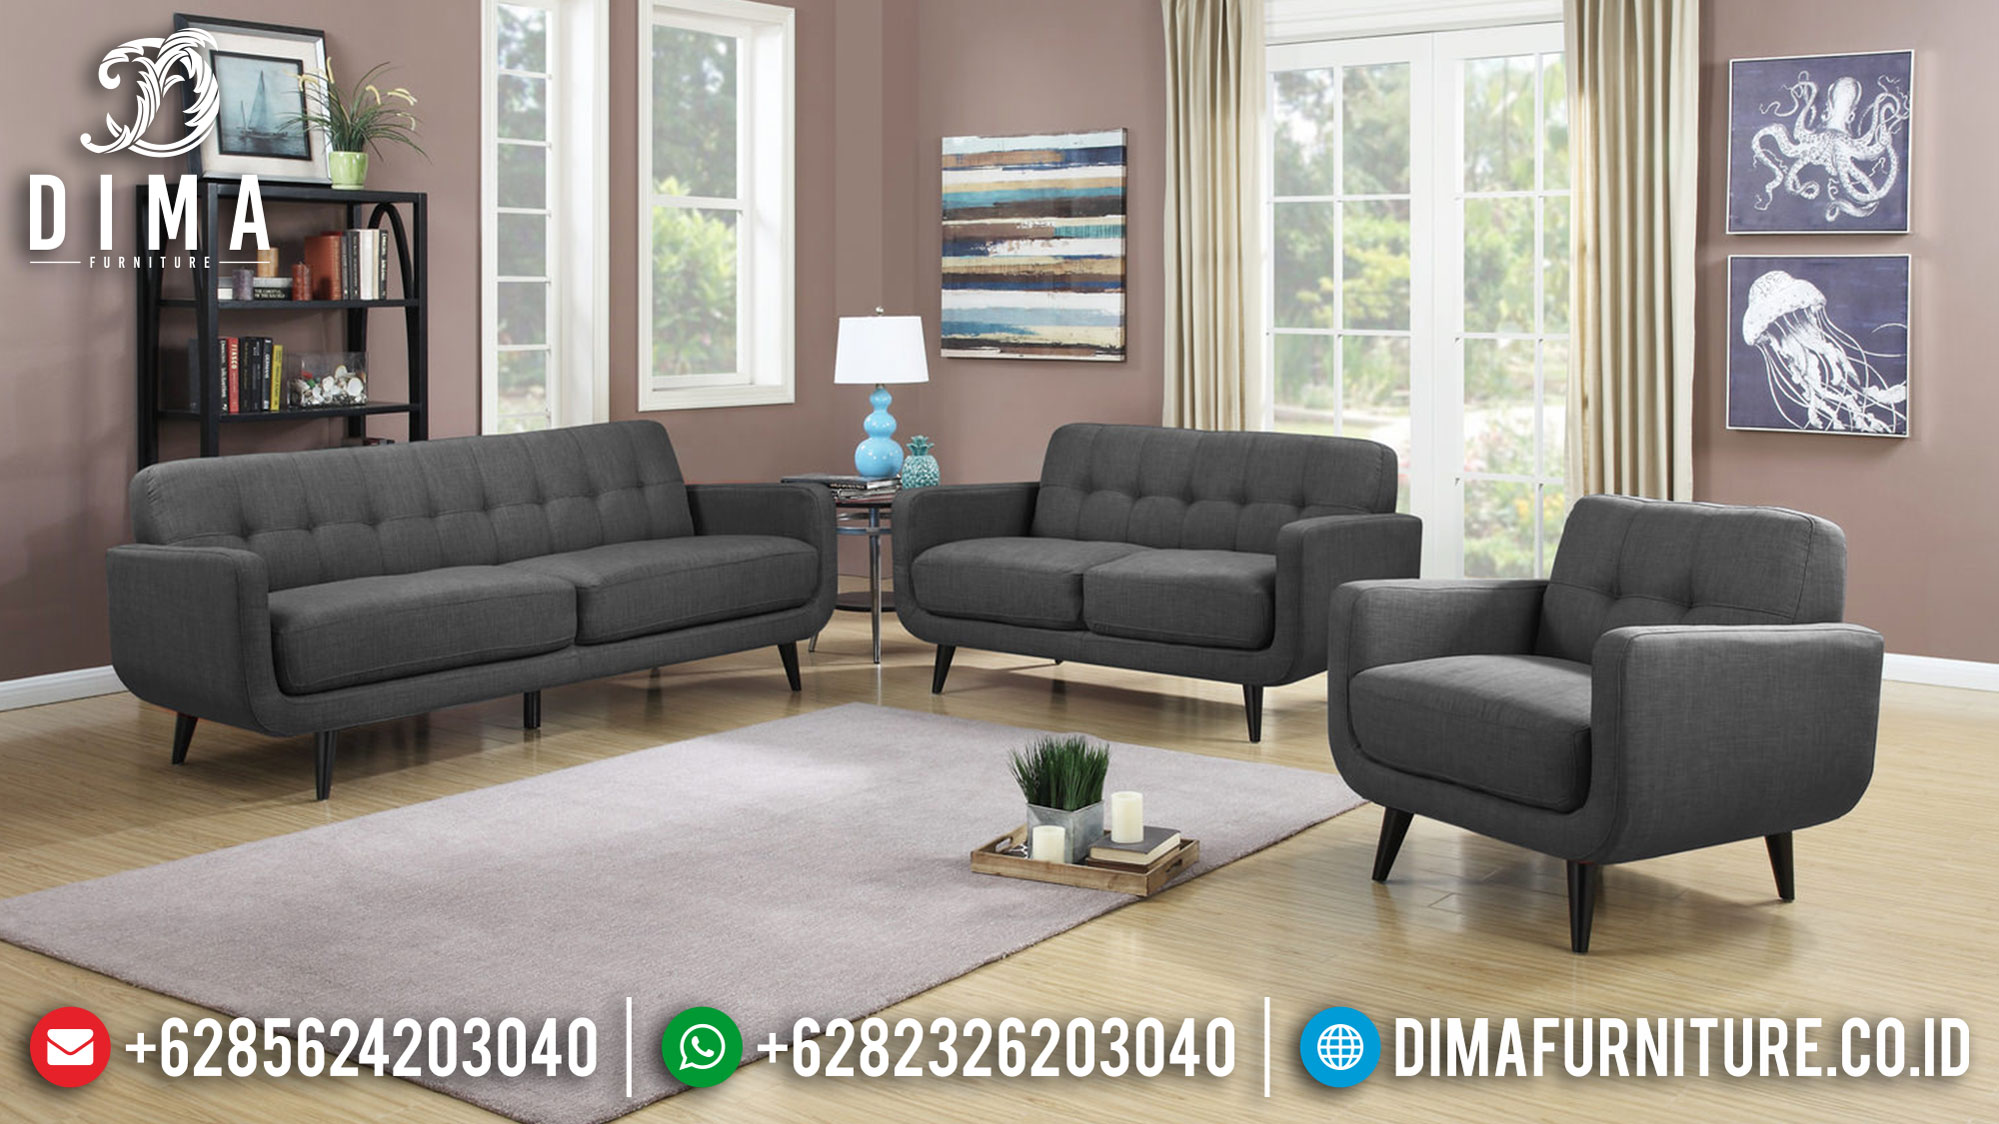 Living Room Design Sofa Tamu Minimalis Retro Classic New Years Sale Edition TTJ-1228